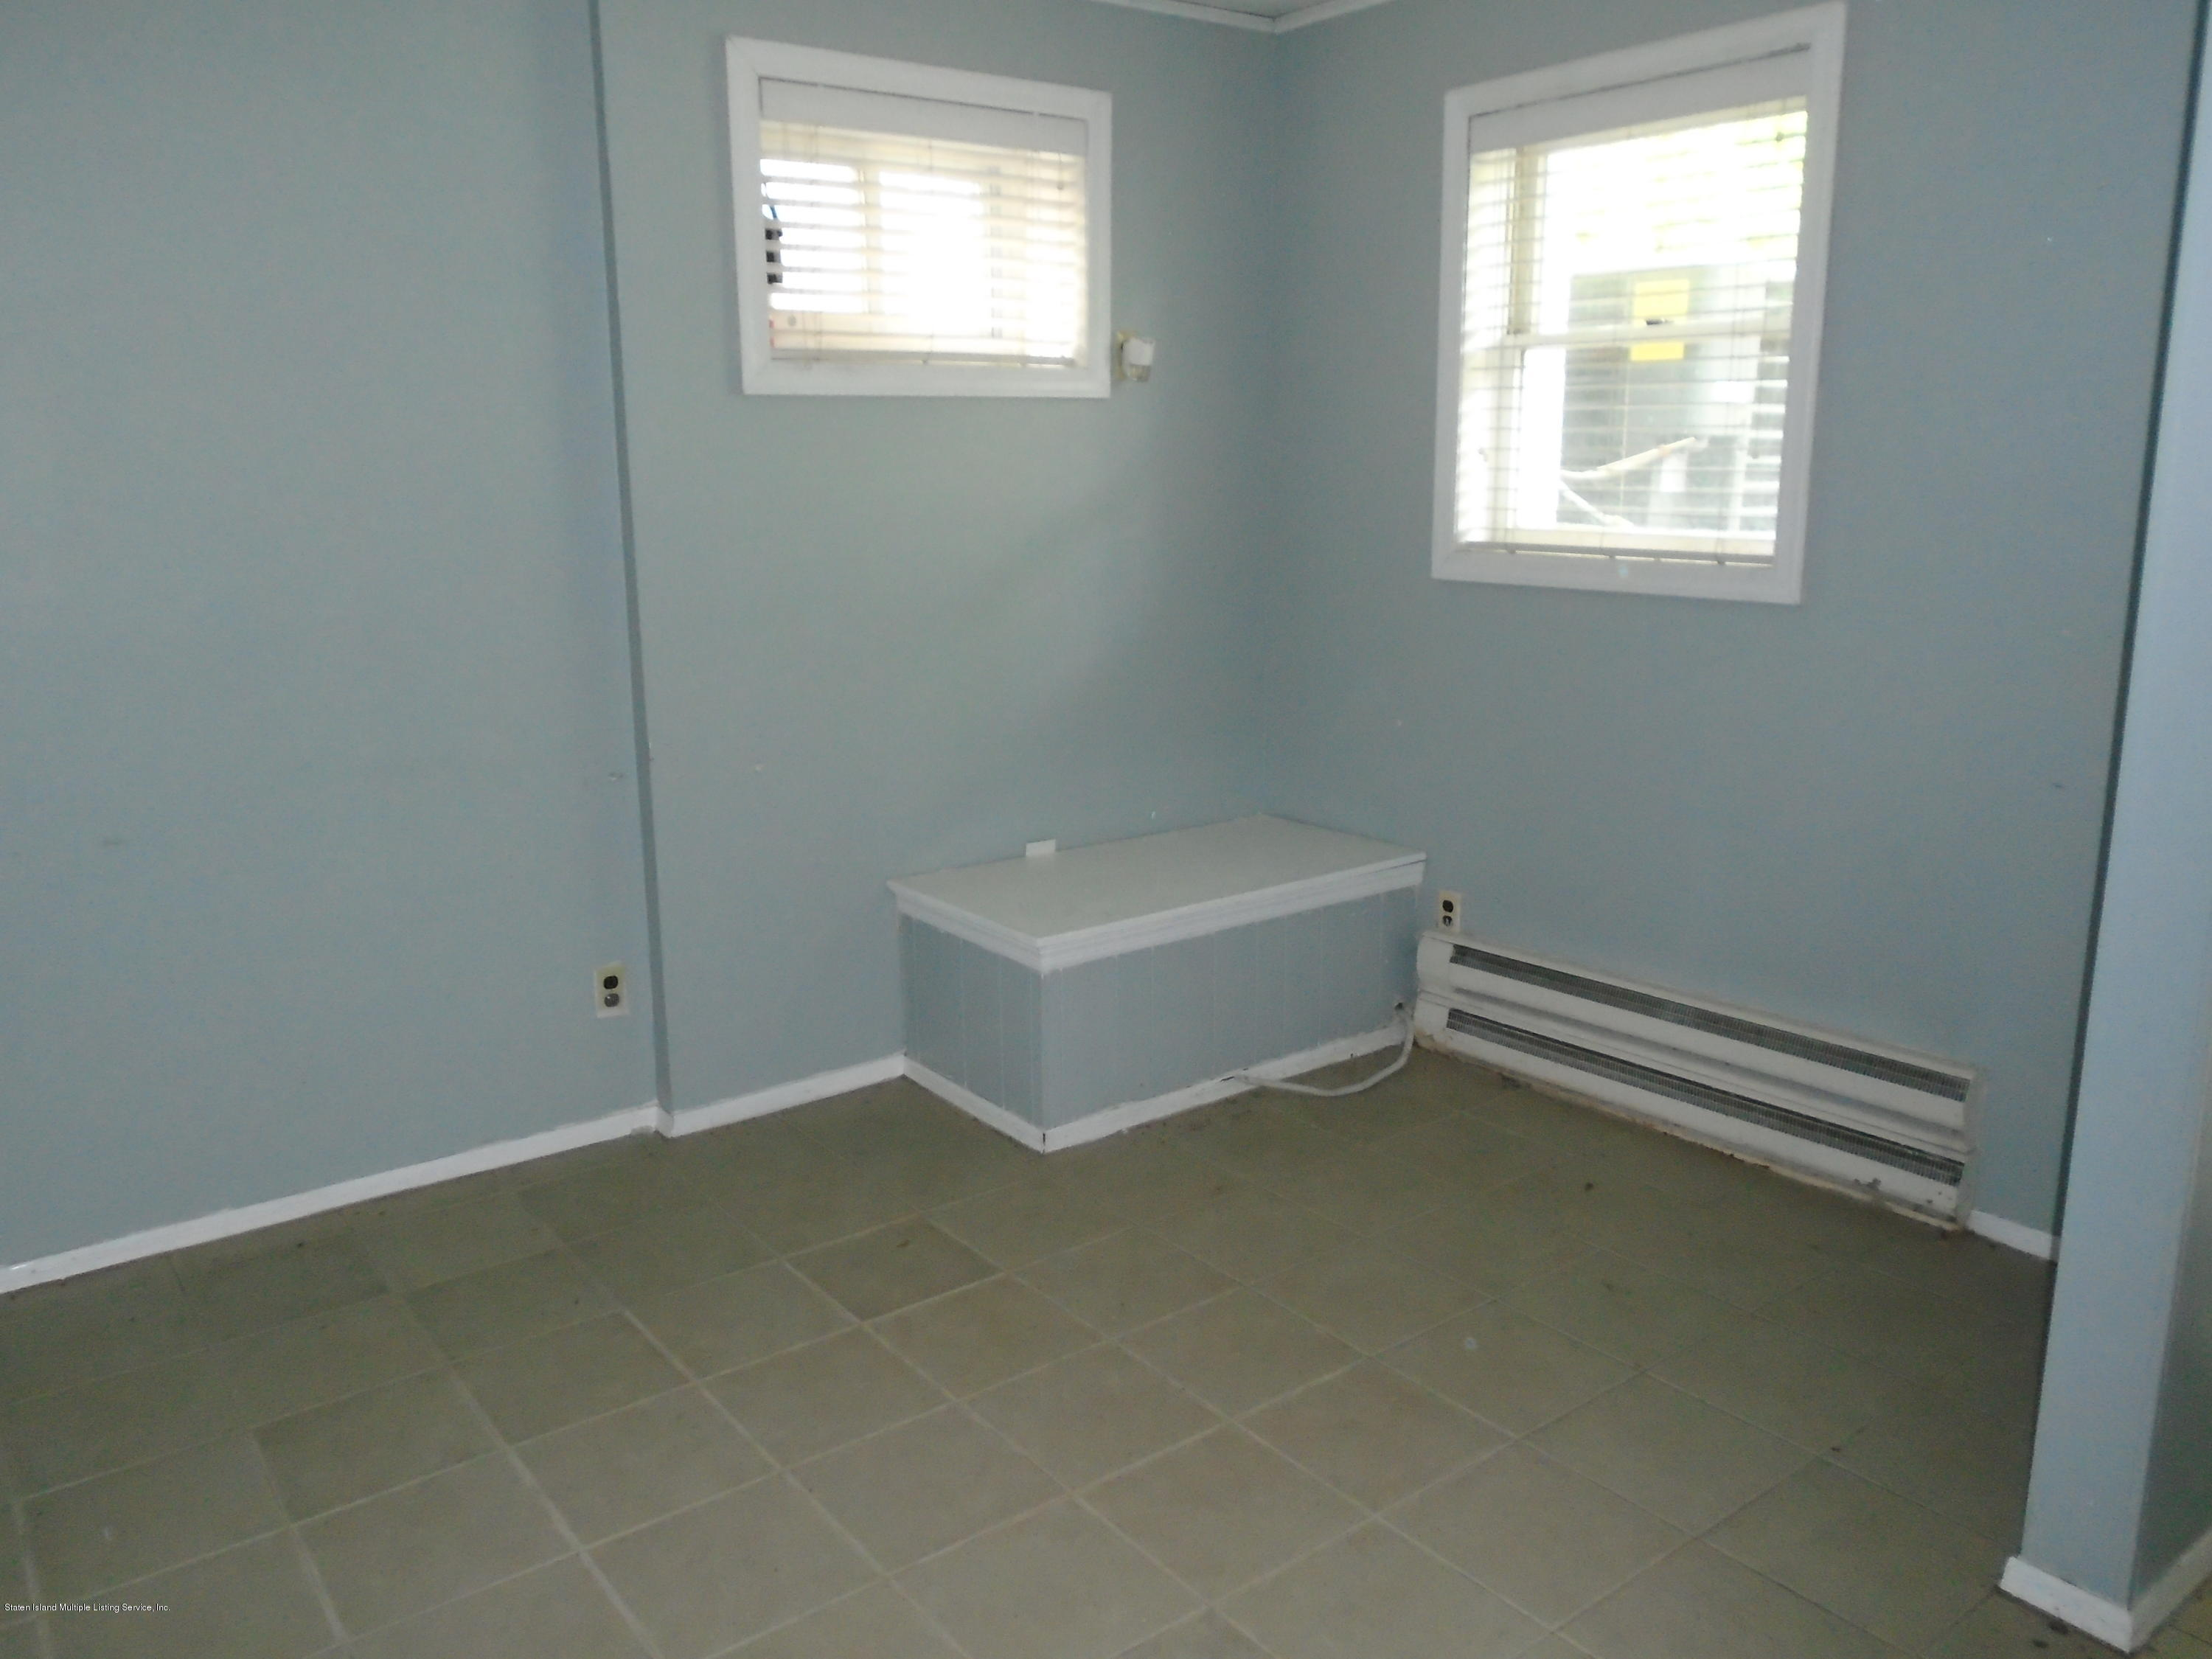 Two Family - Semi-Attached 4 University Place  Staten Island, NY 10301, MLS-1130572-19